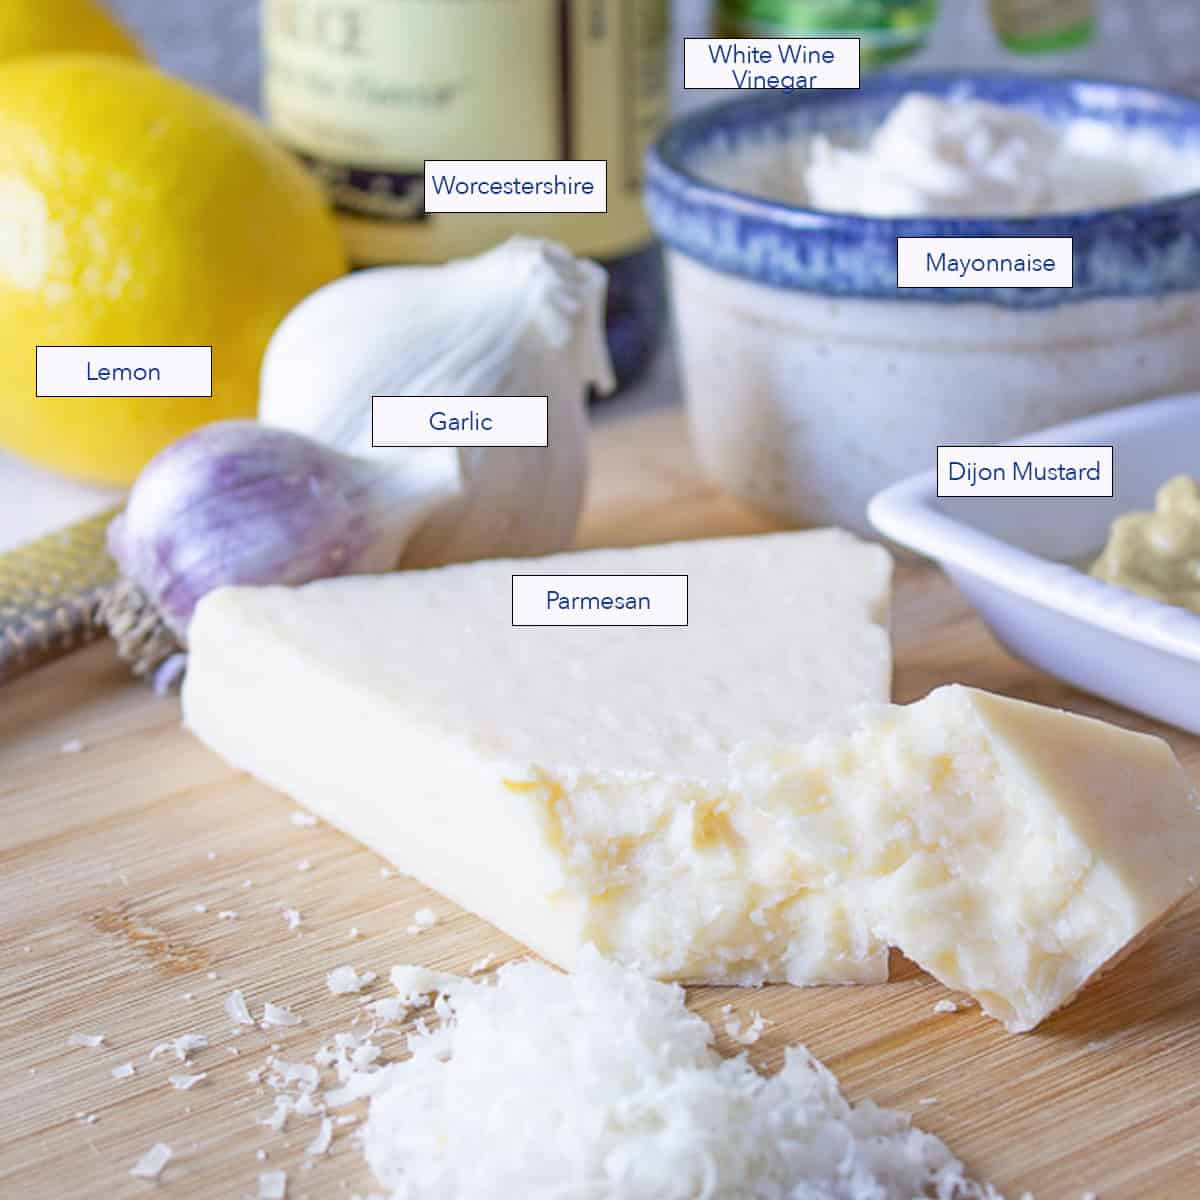 Grated parmesan cheese on a wooden cutting board with other ingredients behind the cheese.